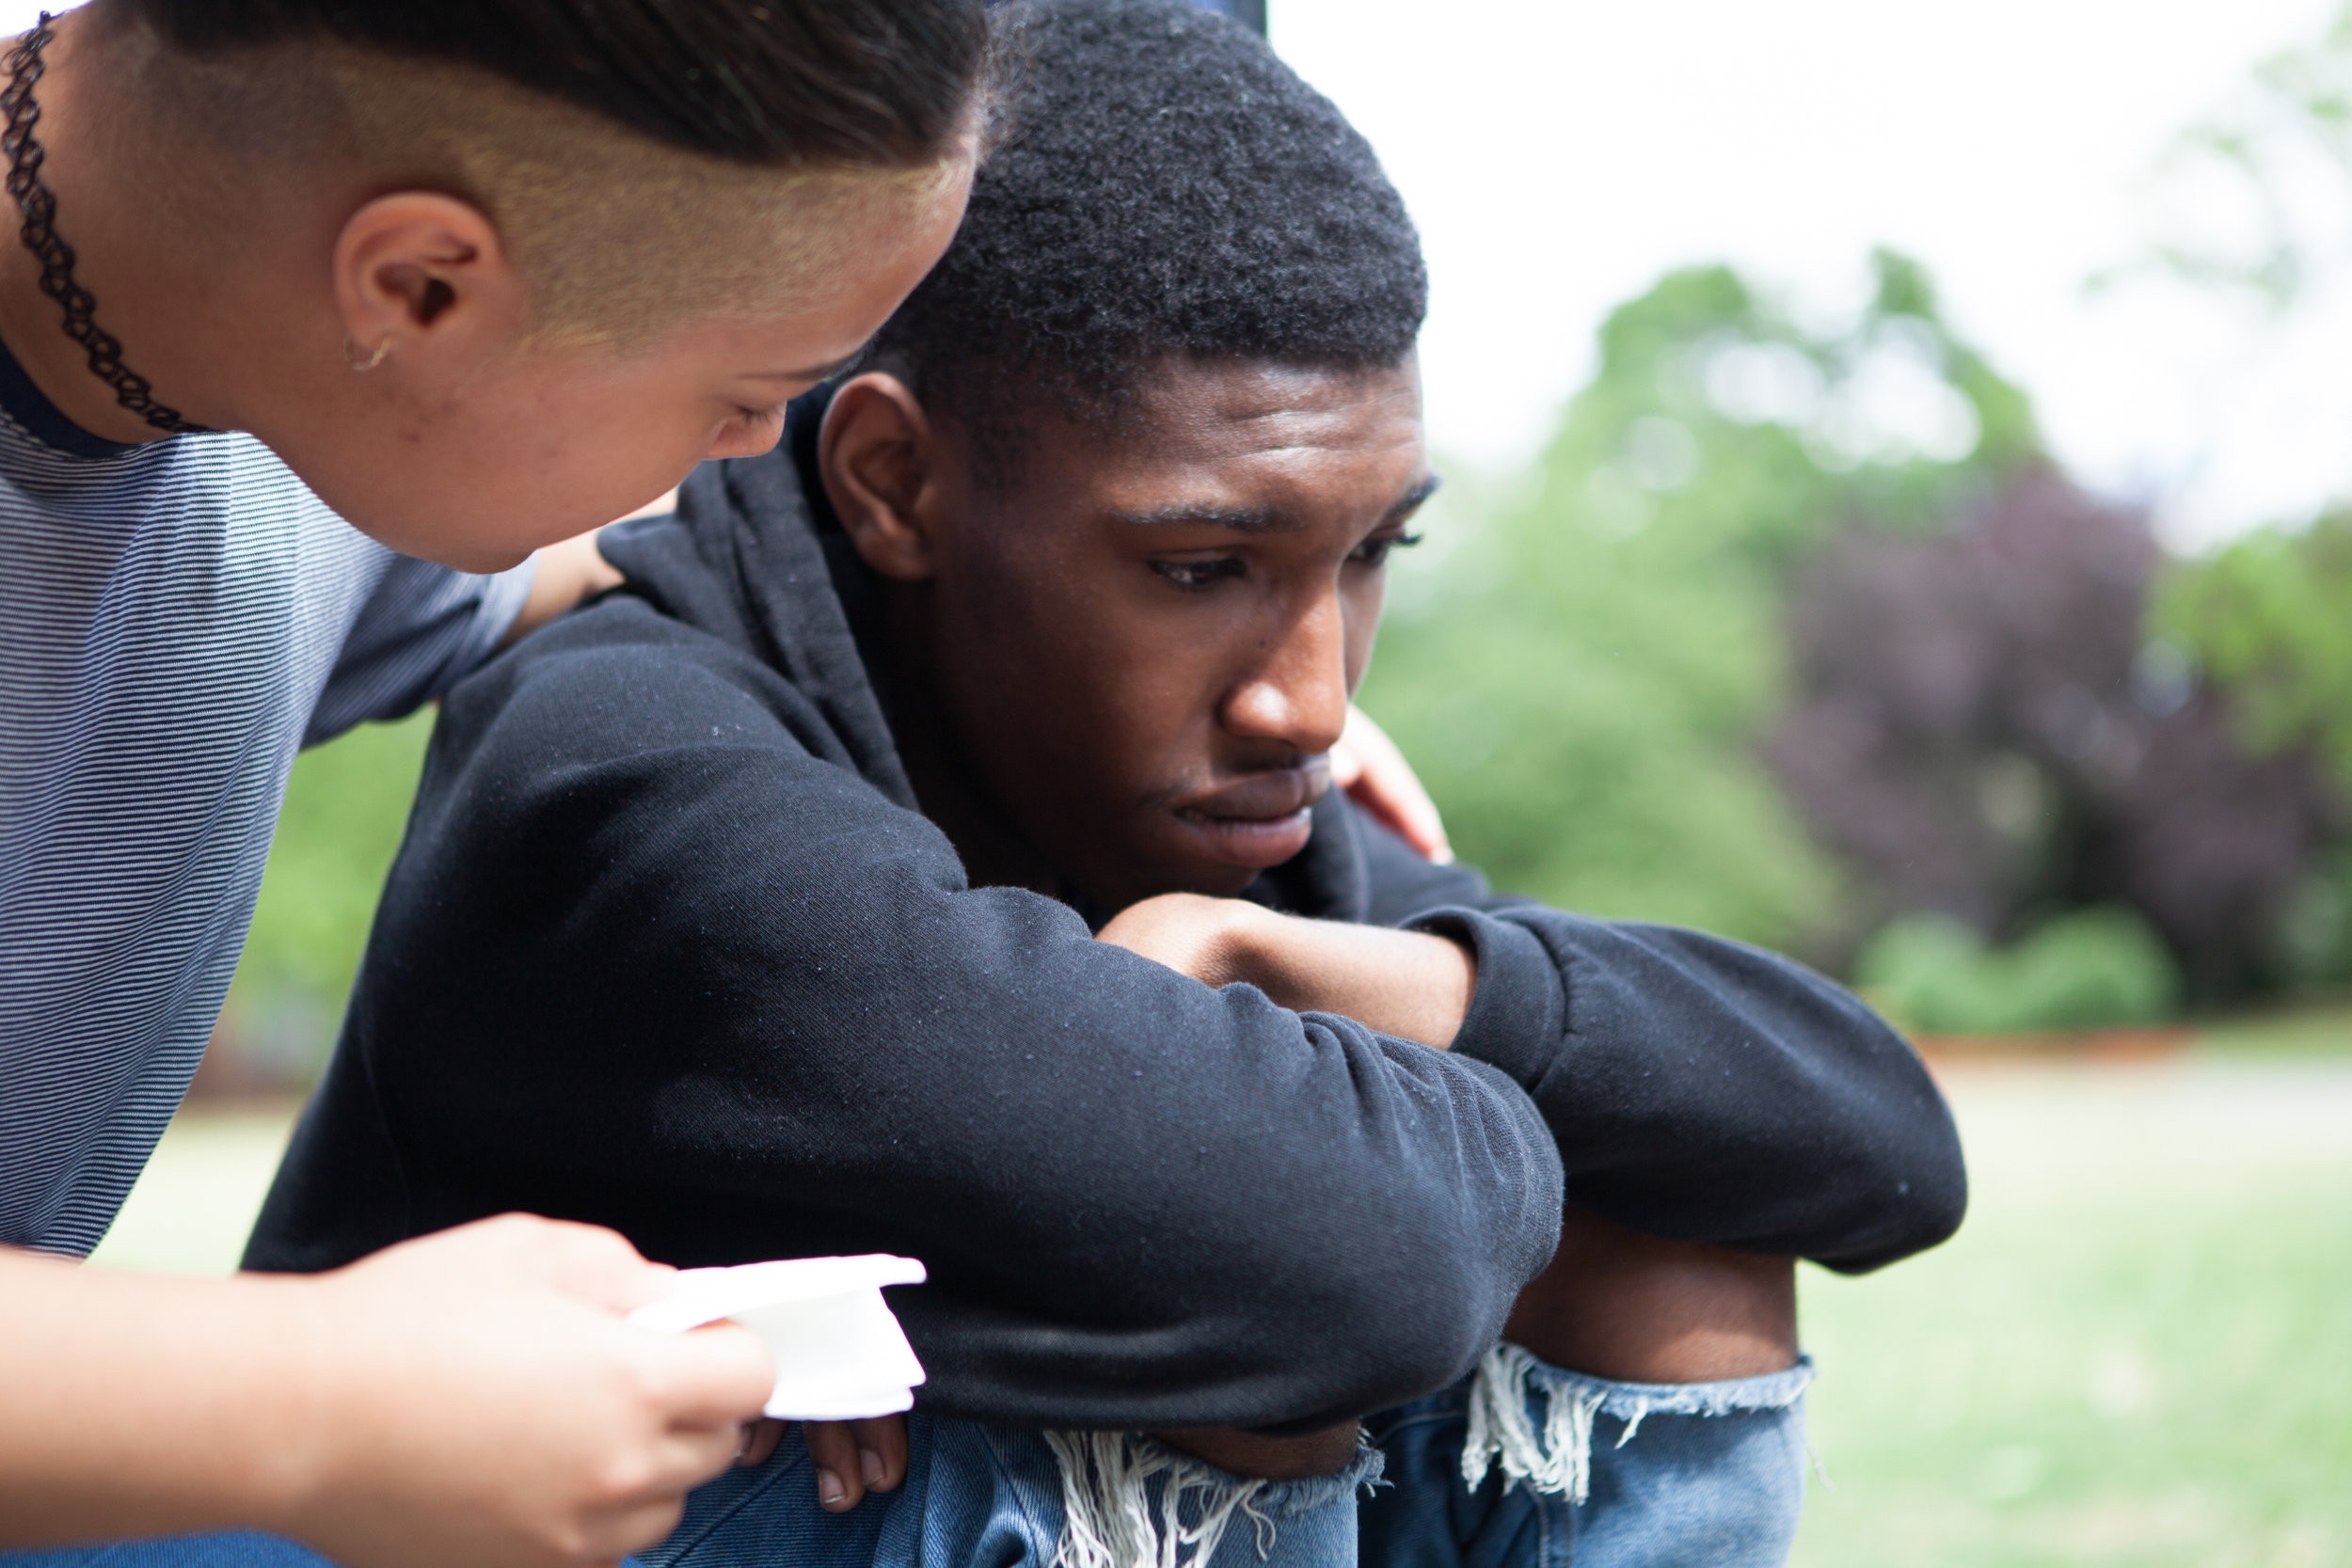 Do you know someone that's being bullied? - A closer look at what you can do if you know someone that's being bullied